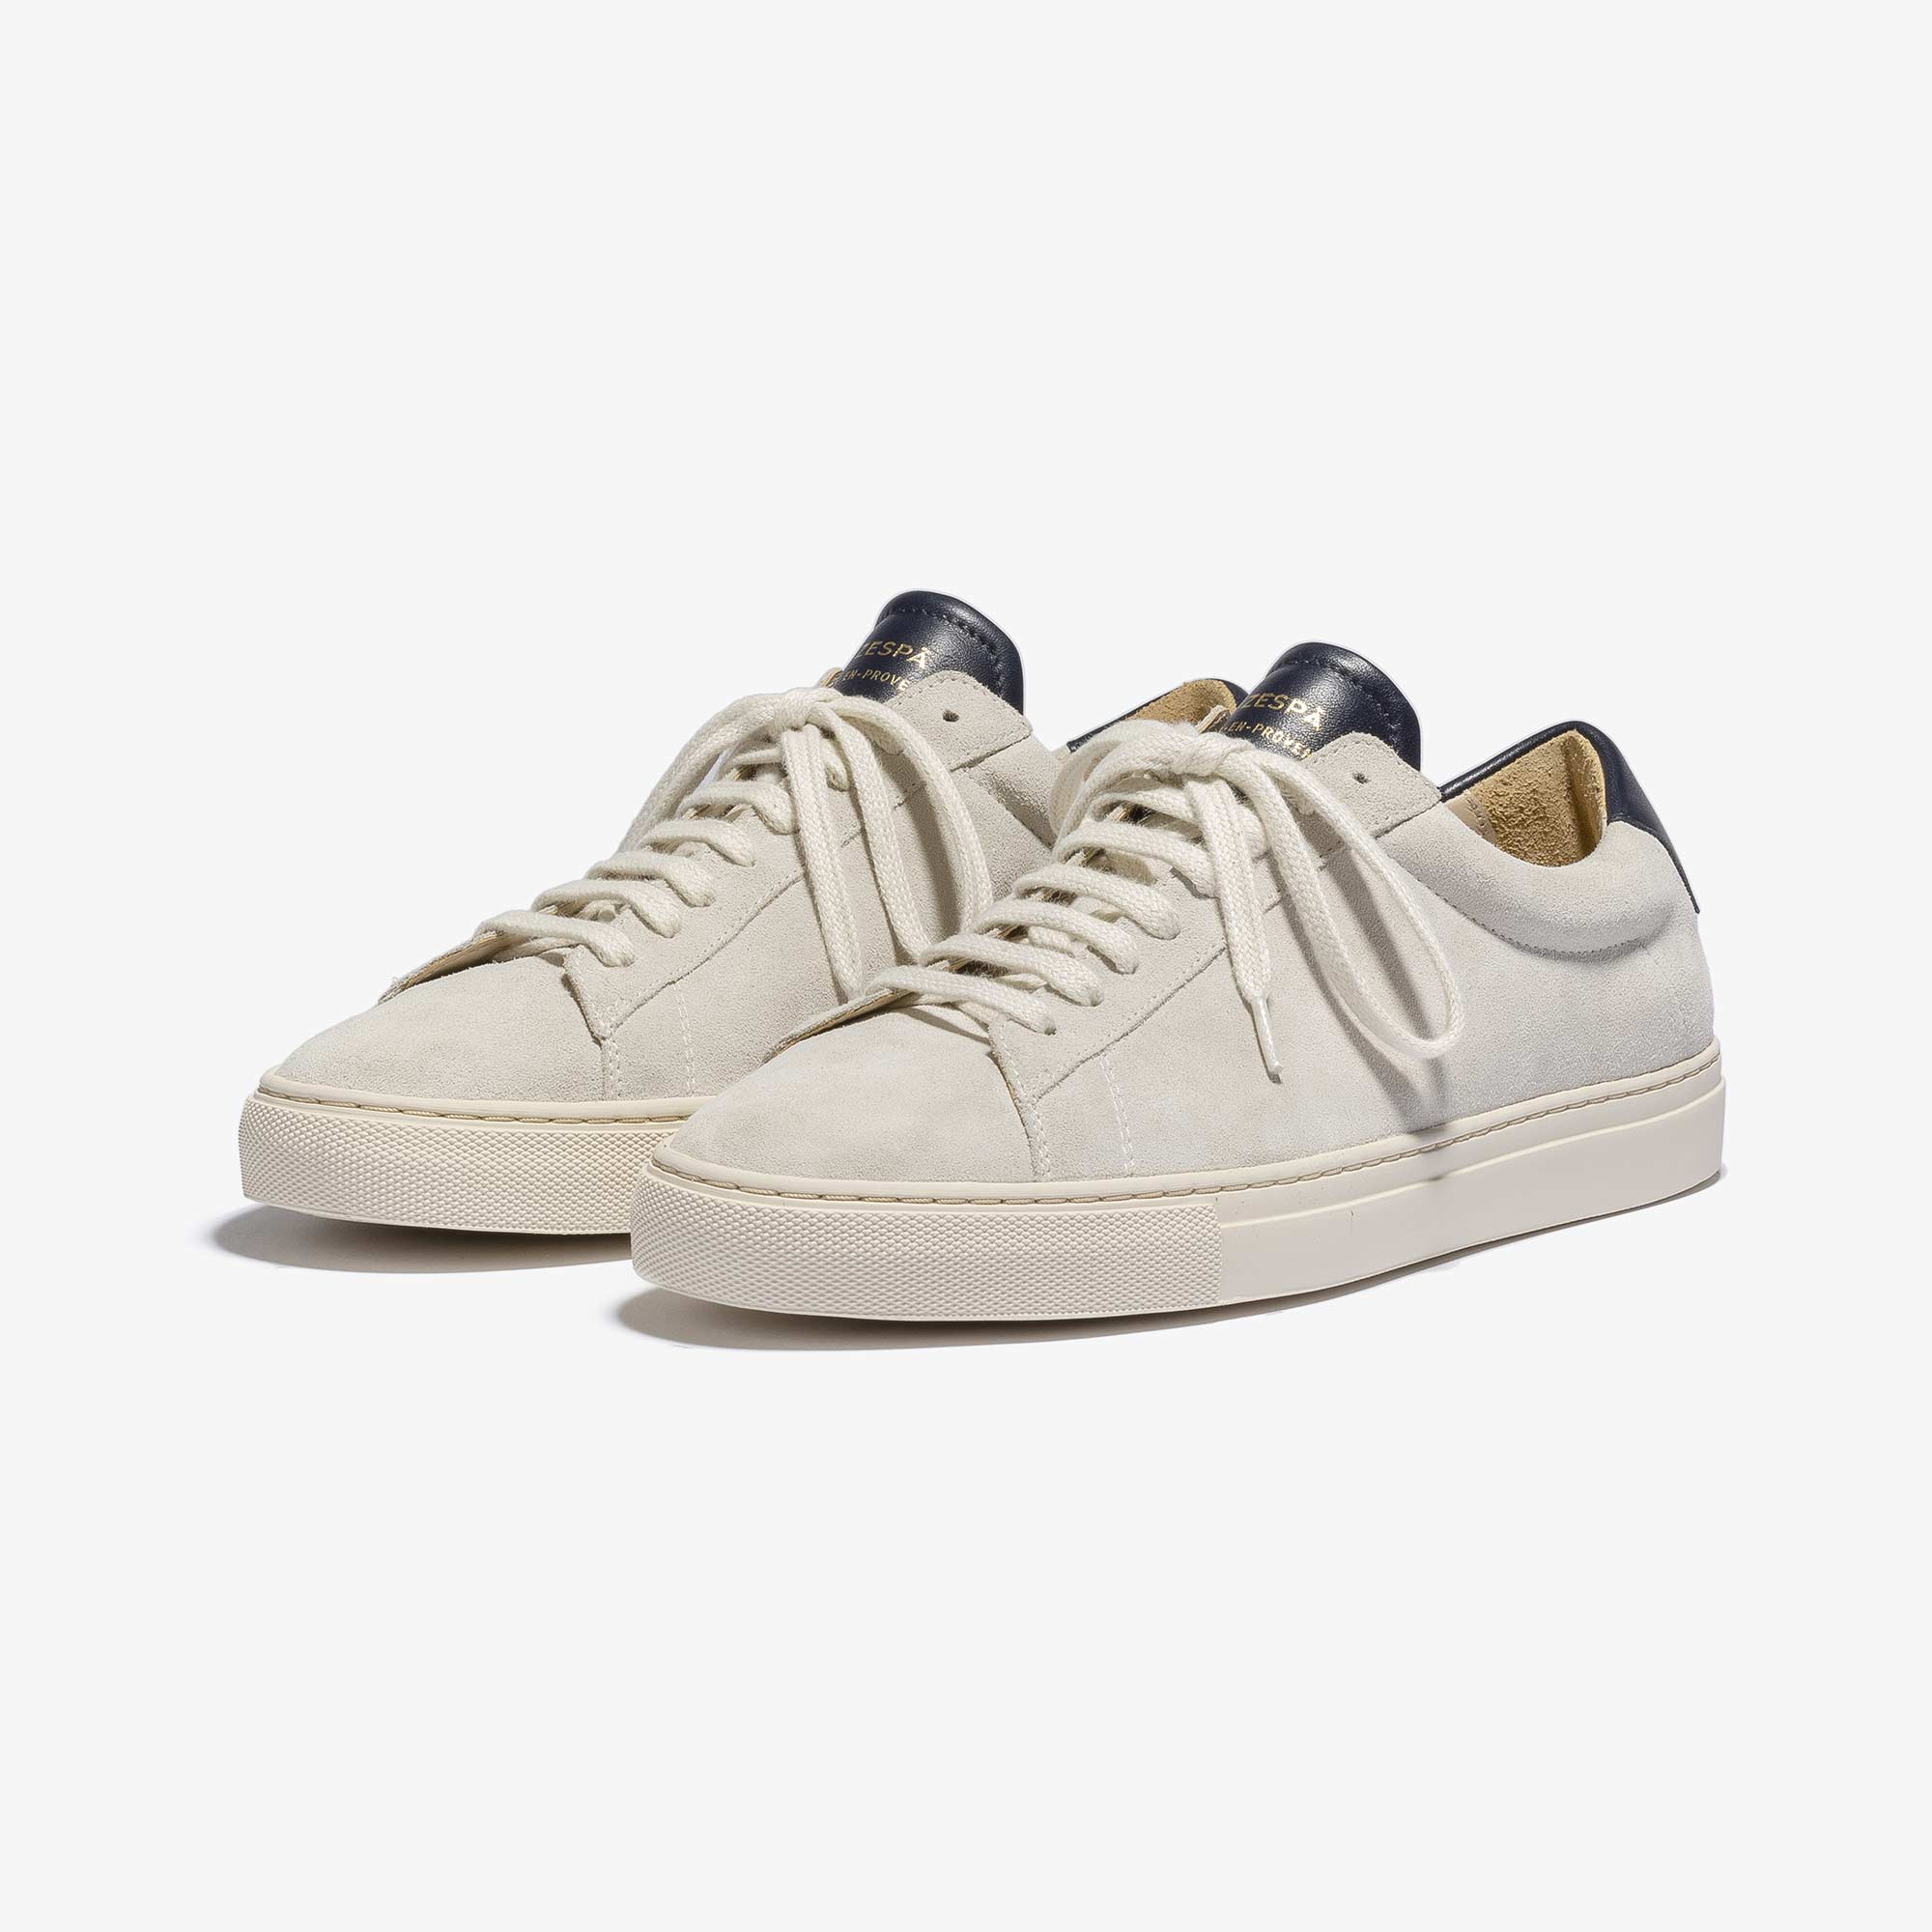 ZSP4 HGH APLA SUEDE OFFWHITE / NAVY